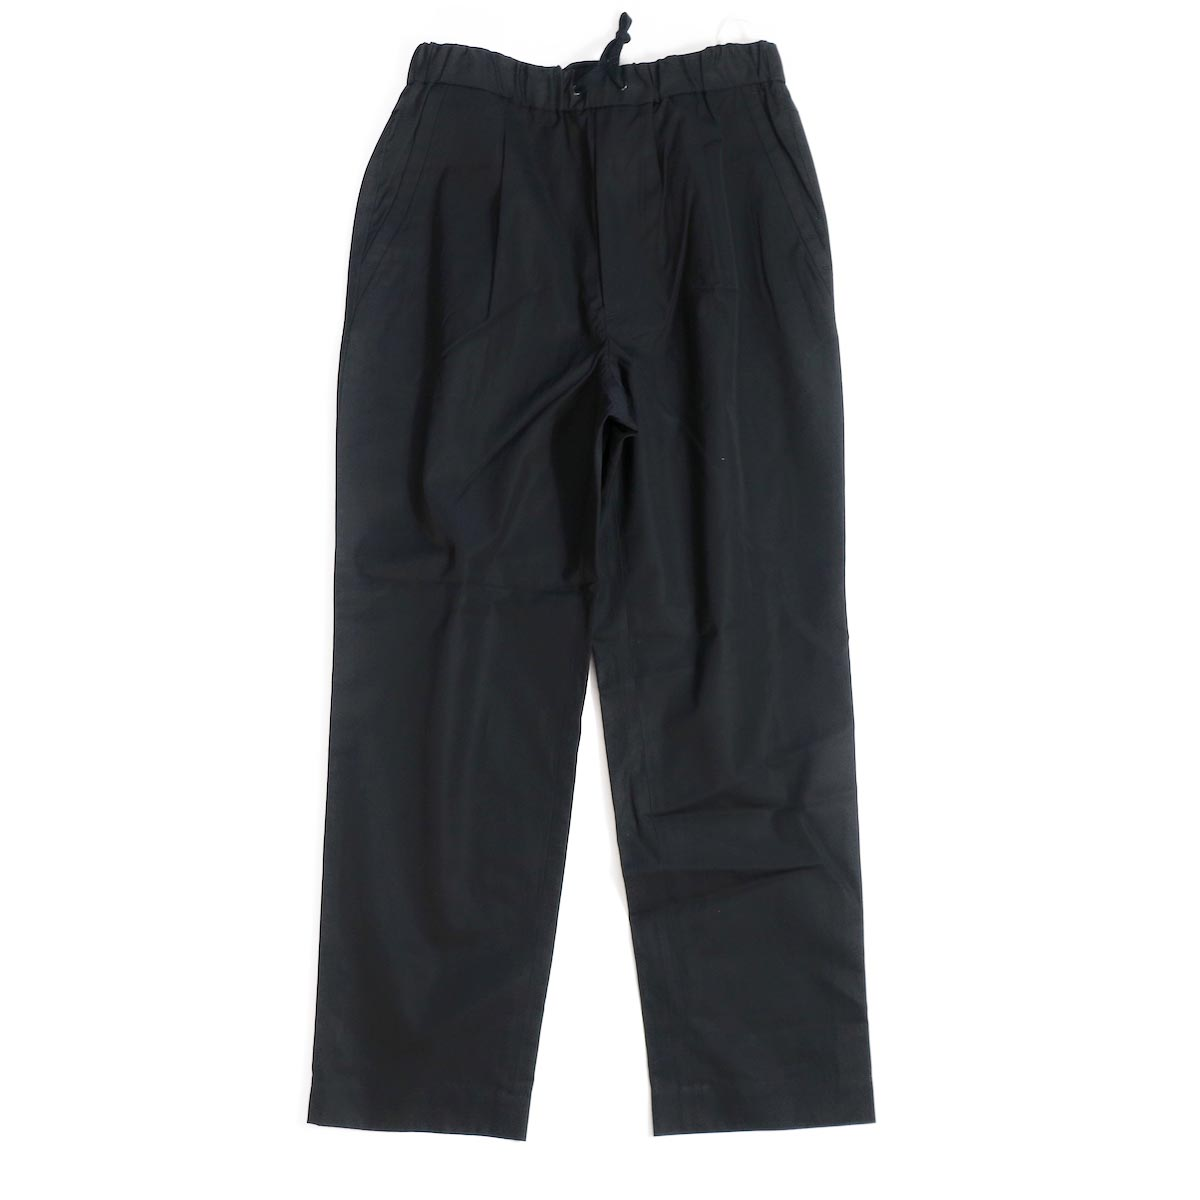 A VONTADE / 1 Tuck Tapered Easy Trousers -Black